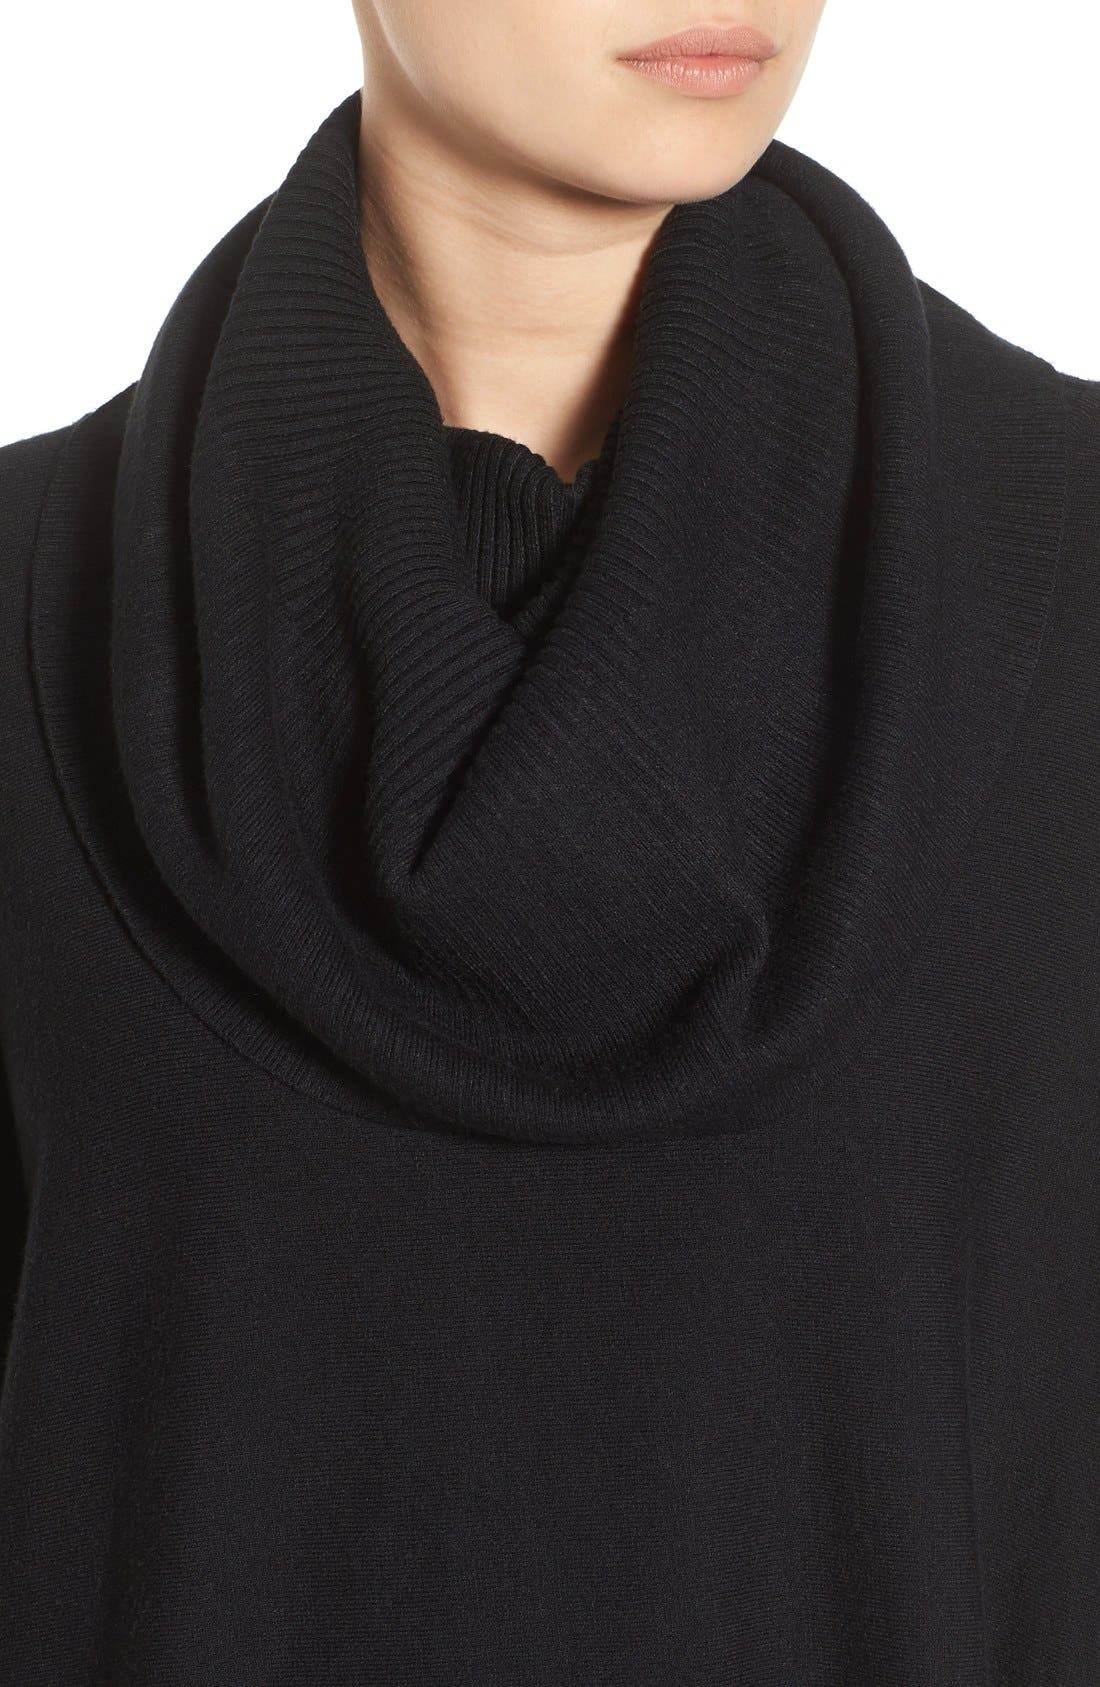 DREAMERS BY DEBUT, Cowl Neck Boxy Pullover, Alternate thumbnail 5, color, 001